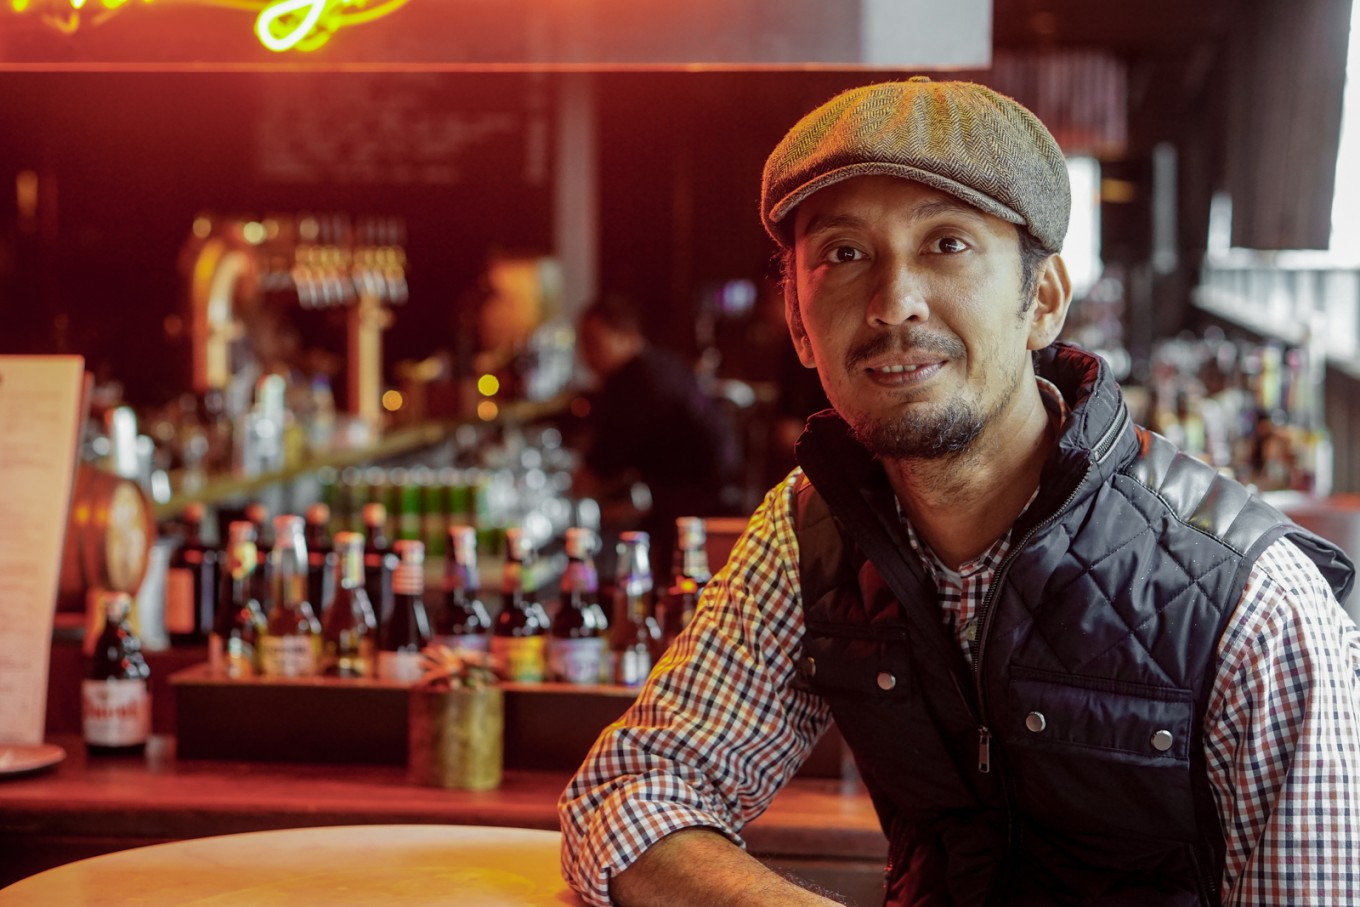 Mixologist Kika Moka for The Dutch: As a well-known figure behind the bar in Jakarta, Kiki Moka has never lost his thirst to find more ideas for creating cocktails. He says that the scene in Indonesia is progressing, albeit slowly, to catch up with those in other countries. Local mix masters are starting to explore flavors by combining ingredients based on international to local produce, and to try many different methods to create something different for the palate. On Kiki's Valentine's Day recollections, he says he once tried to impress a girl by creating a special cocktail – but it turns out she didn't drink alcohol. Rather than give up, Kiki made a spiced chocolate milkshake. The drink was a success: the woman is now his wife.